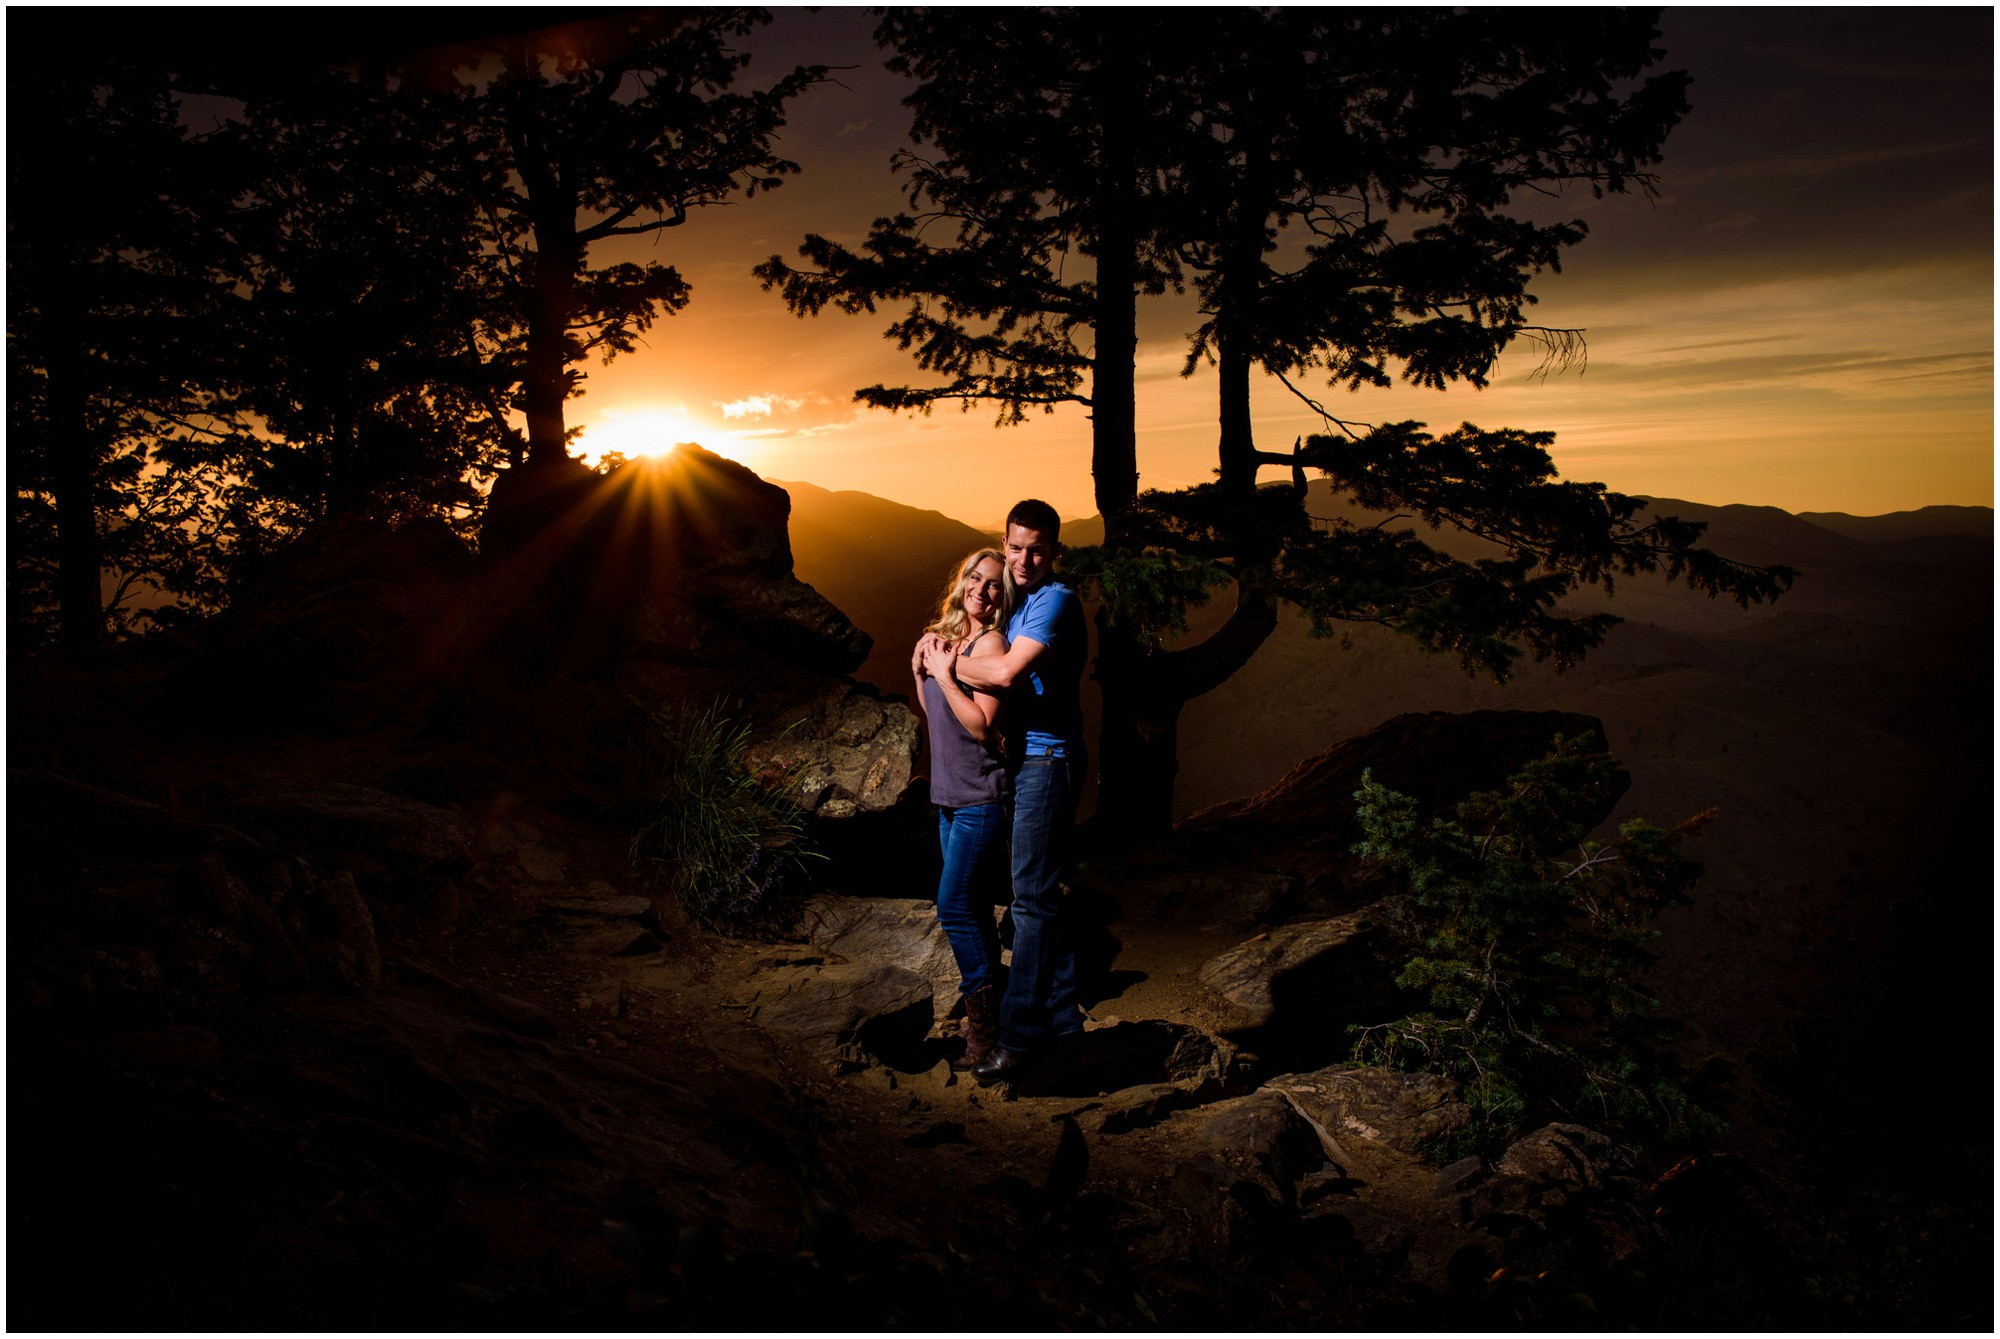 143-lookout-mountain-Golden-sunset-engagement-photography.jpg